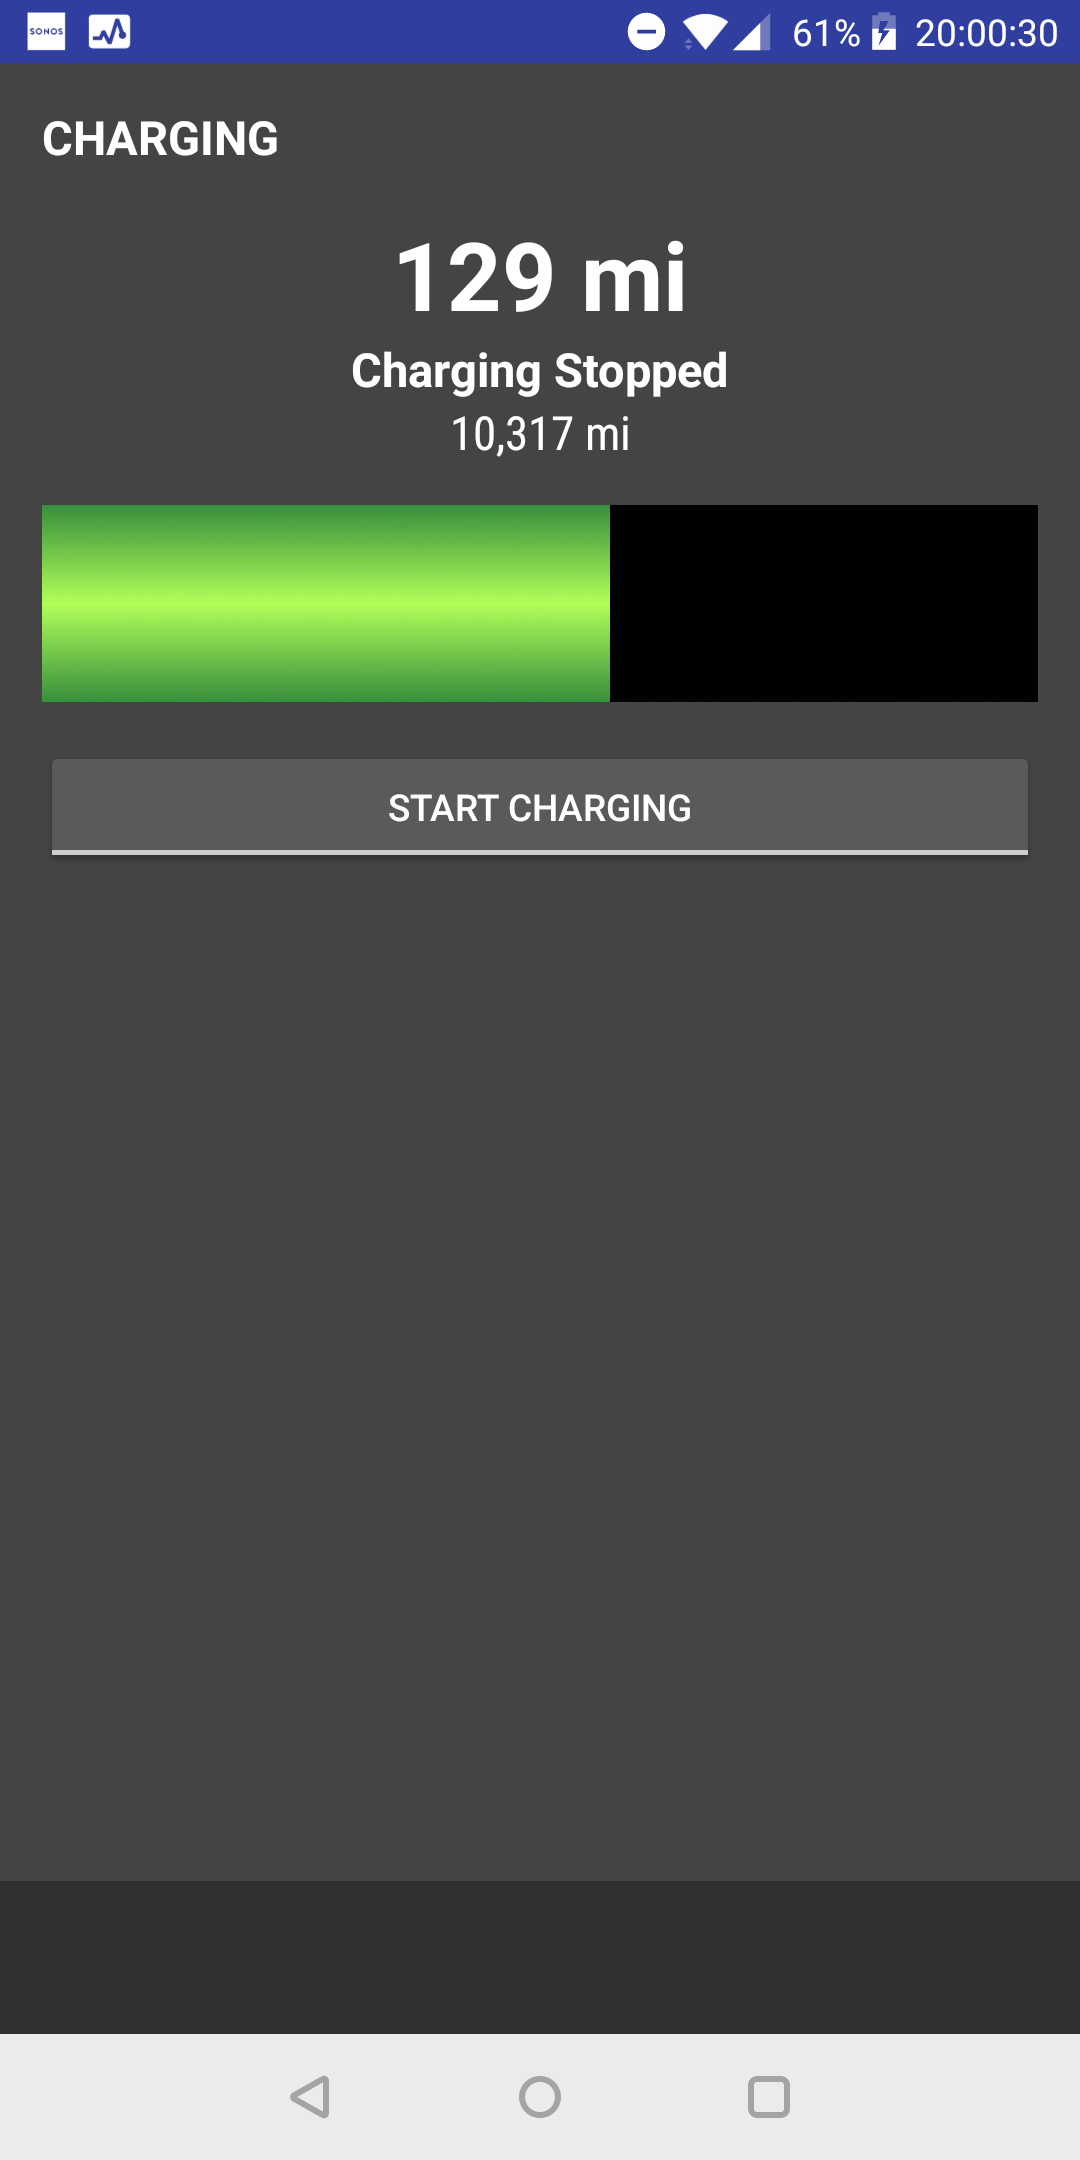 Battery controls app screen.